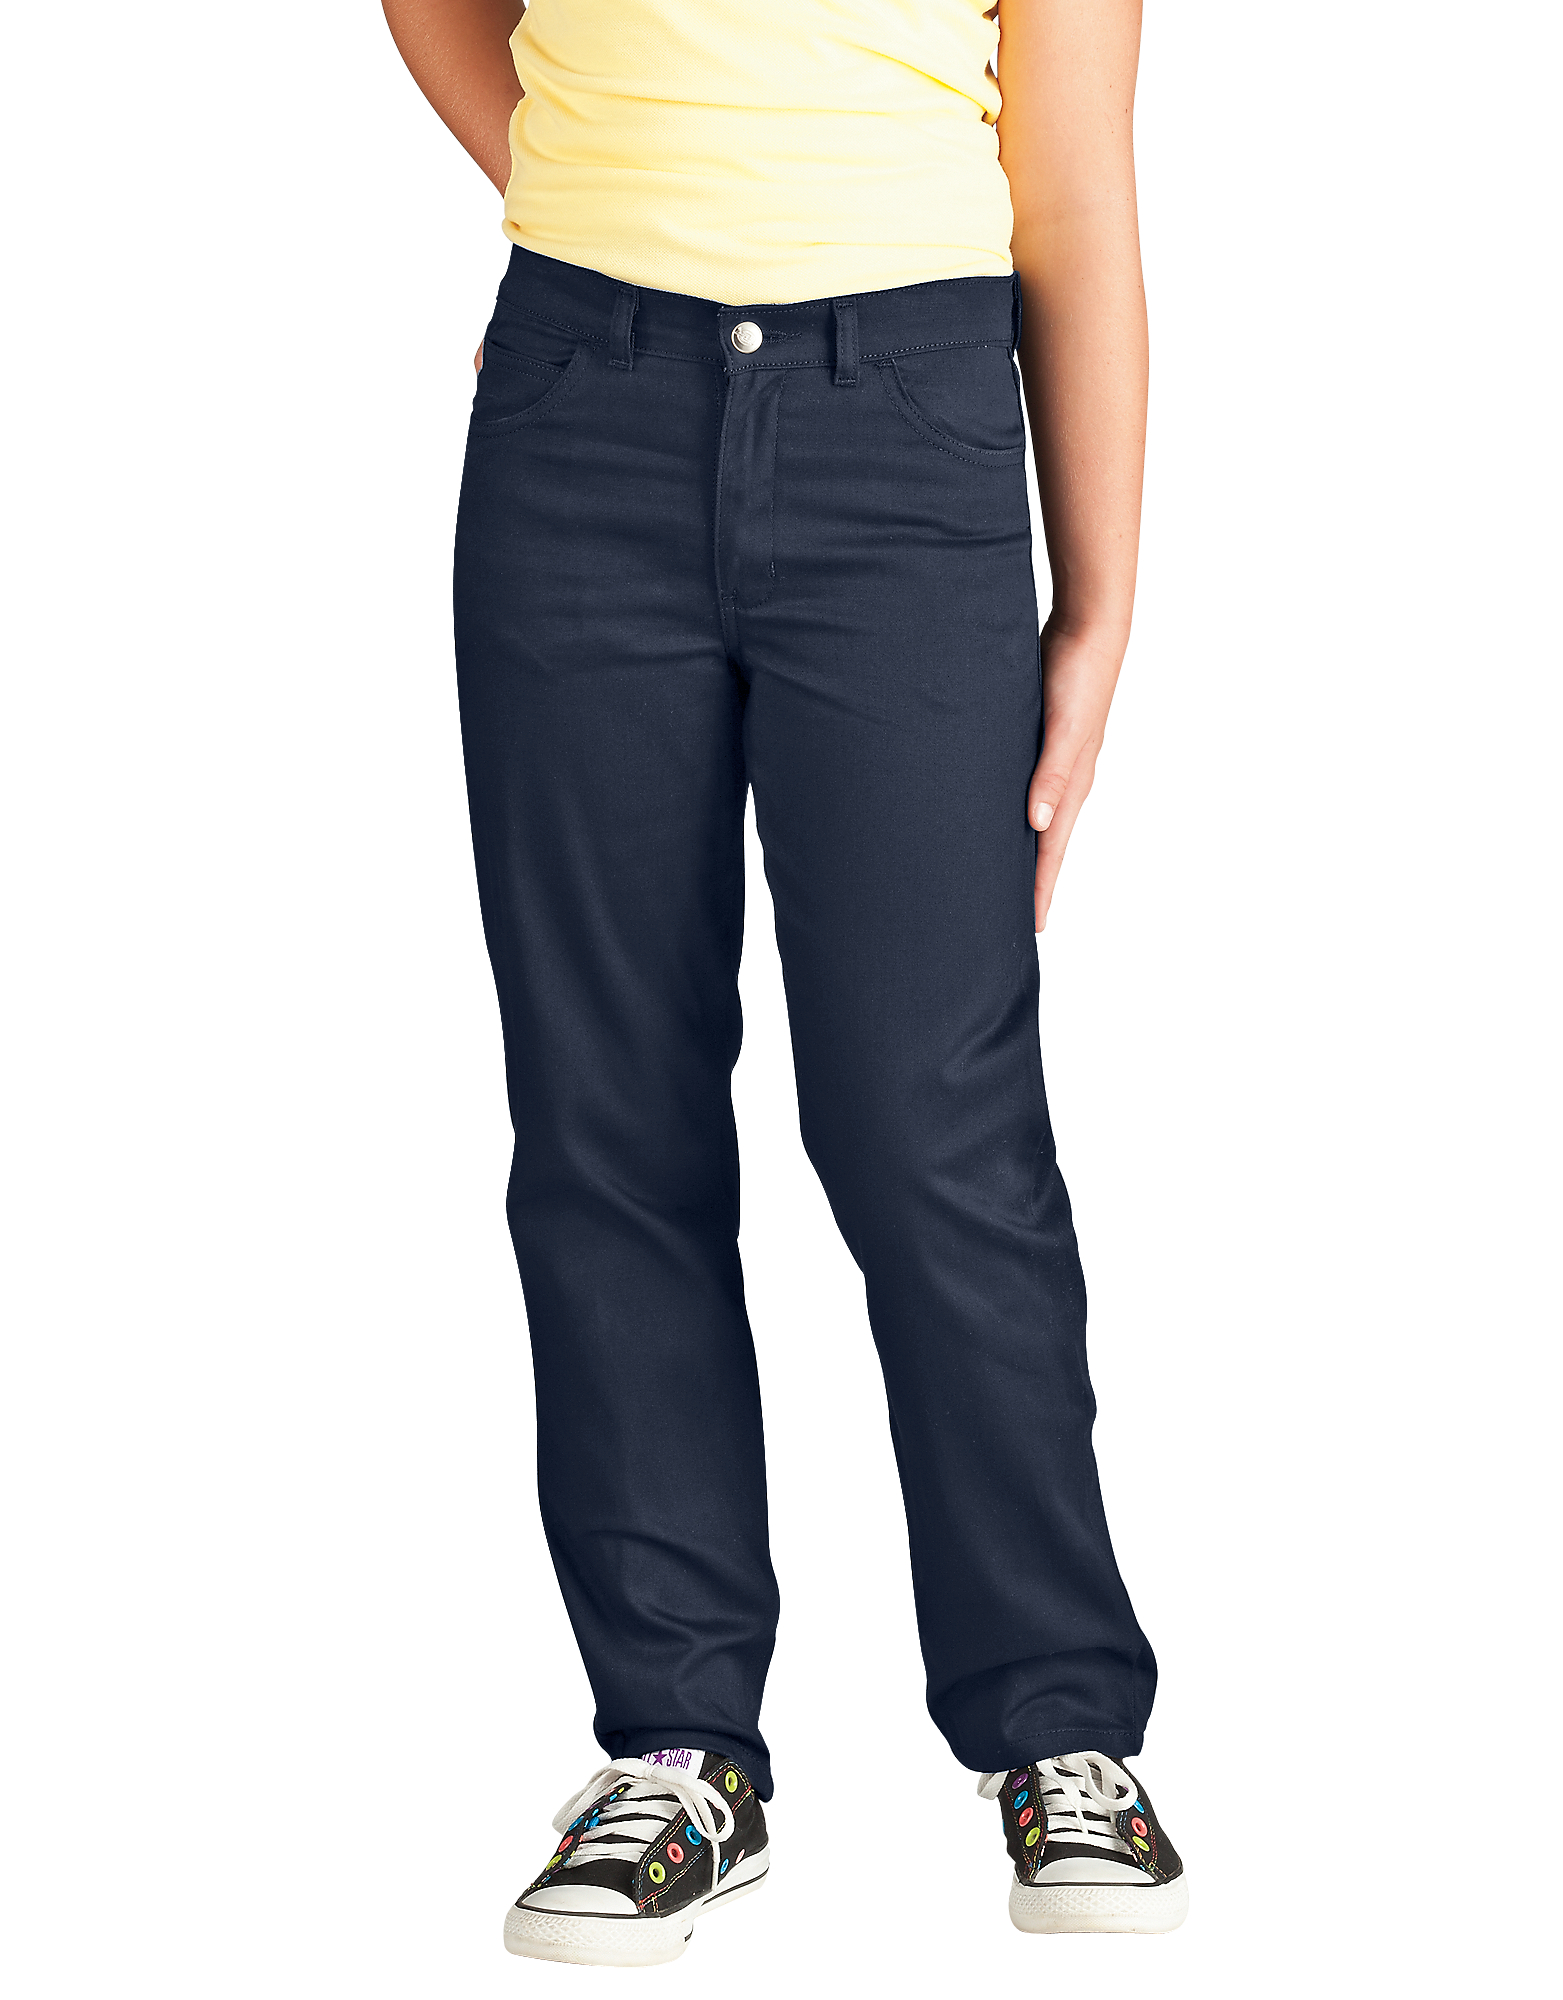 Girls' Skinny Fit Straight Leg 5-Pocket Stretch Twill Pants, 7-20 - Dark Navy (DN)